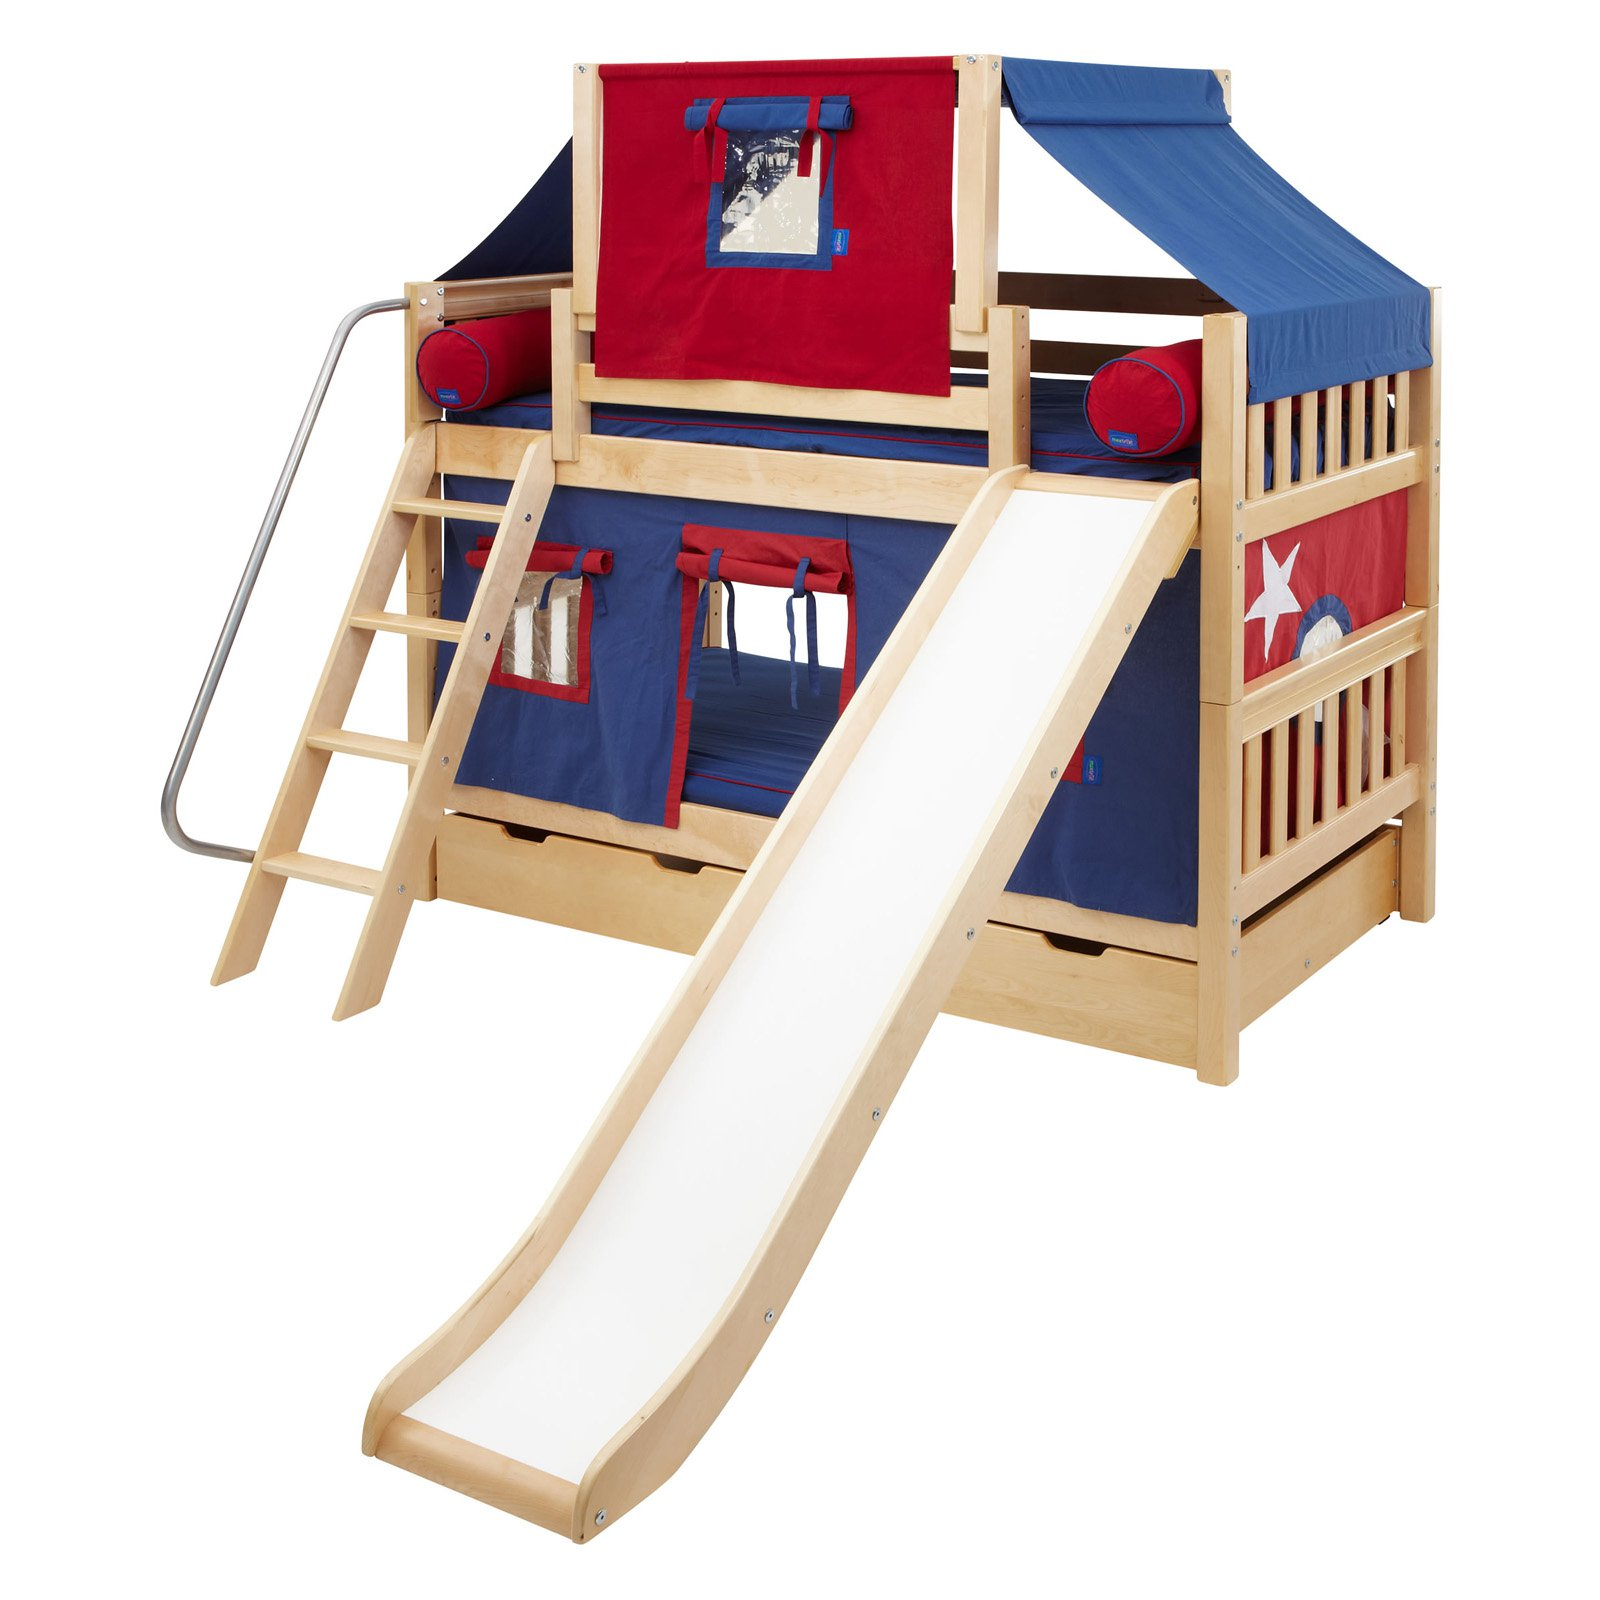 Bunk beds with slide and tent - Bunk Beds With Slide And Tent 7